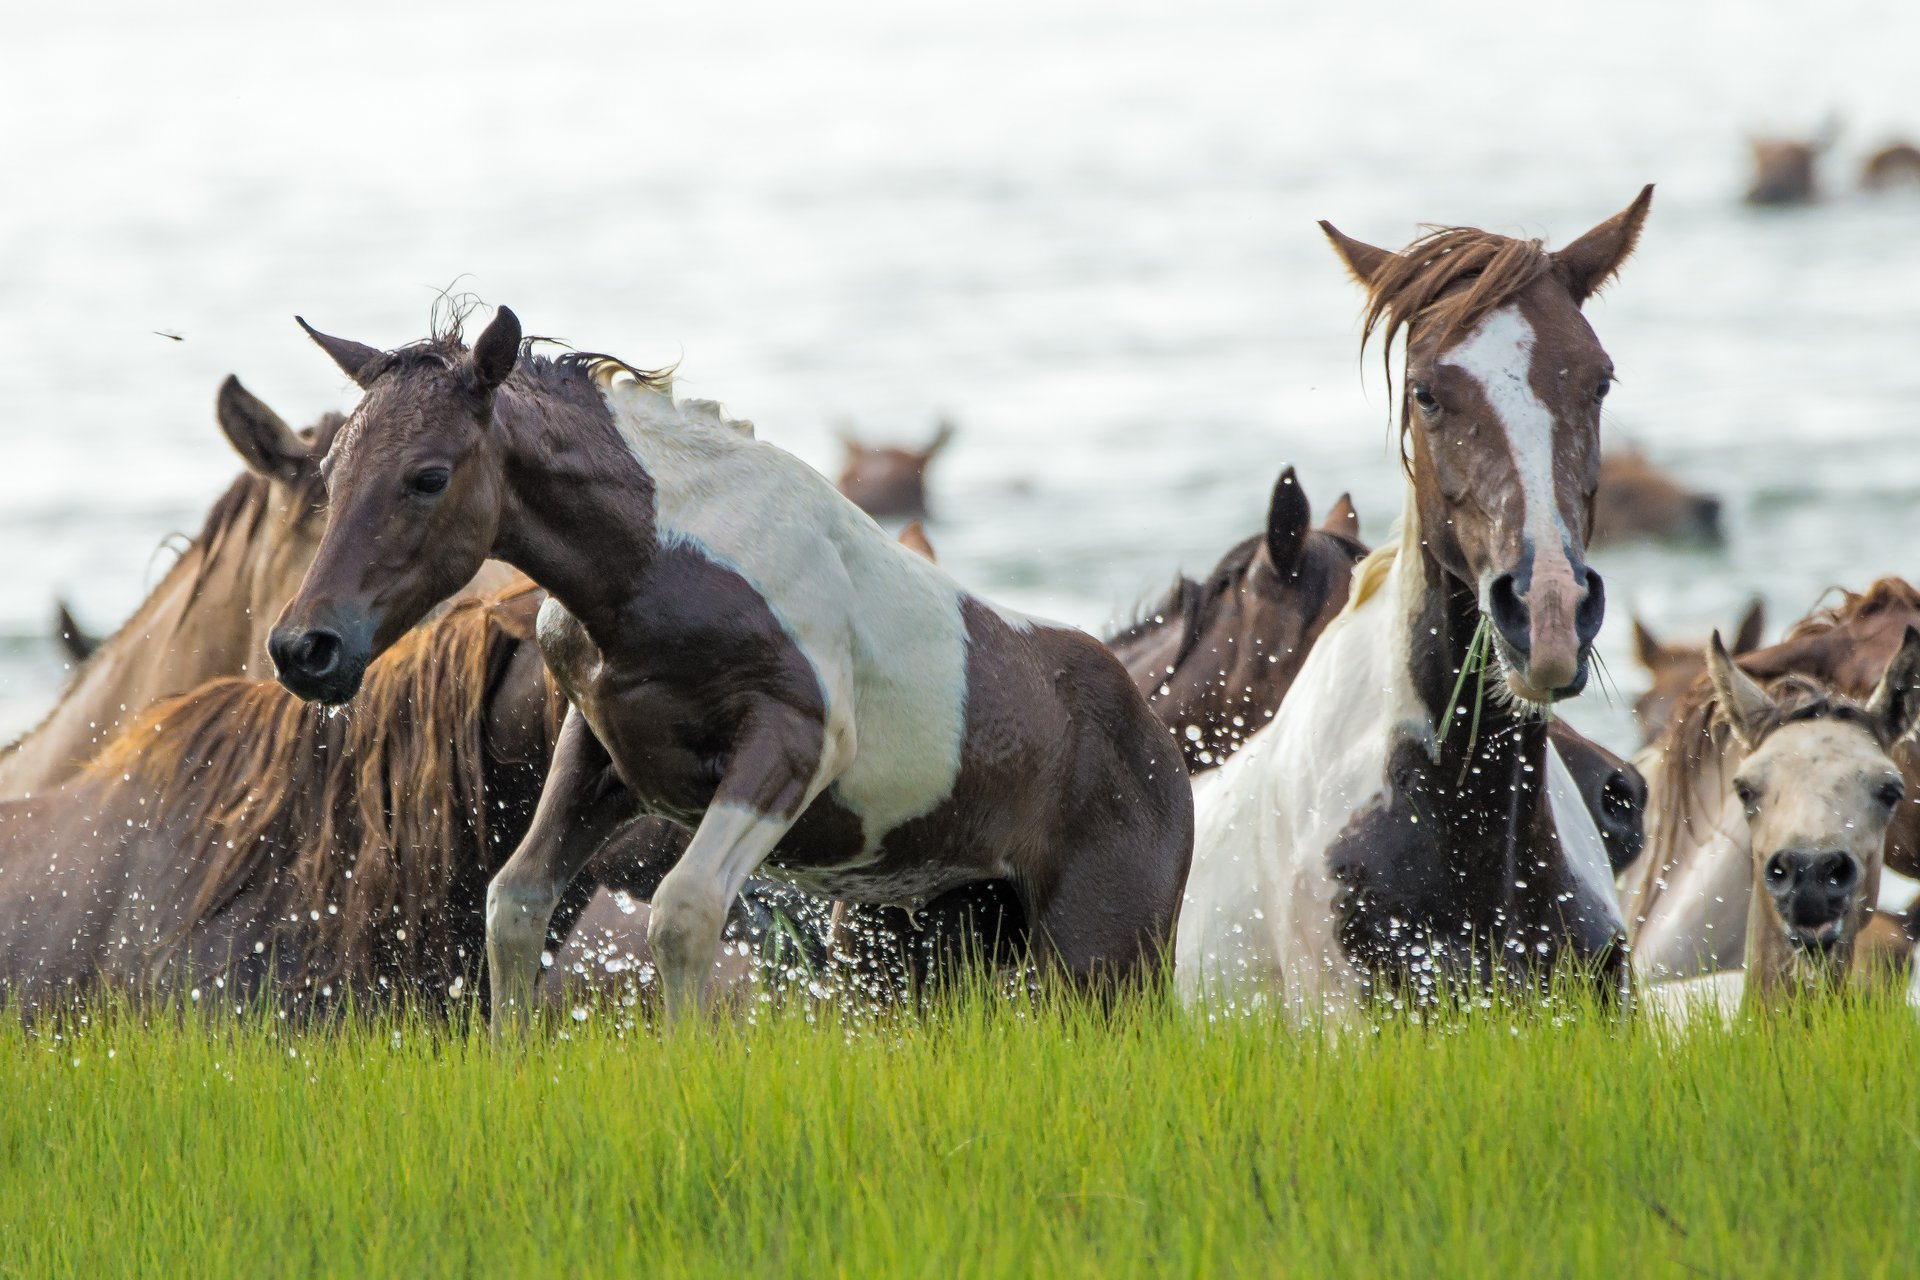 Chincoteague Pony Swim in Virginia 2020 - Best Time